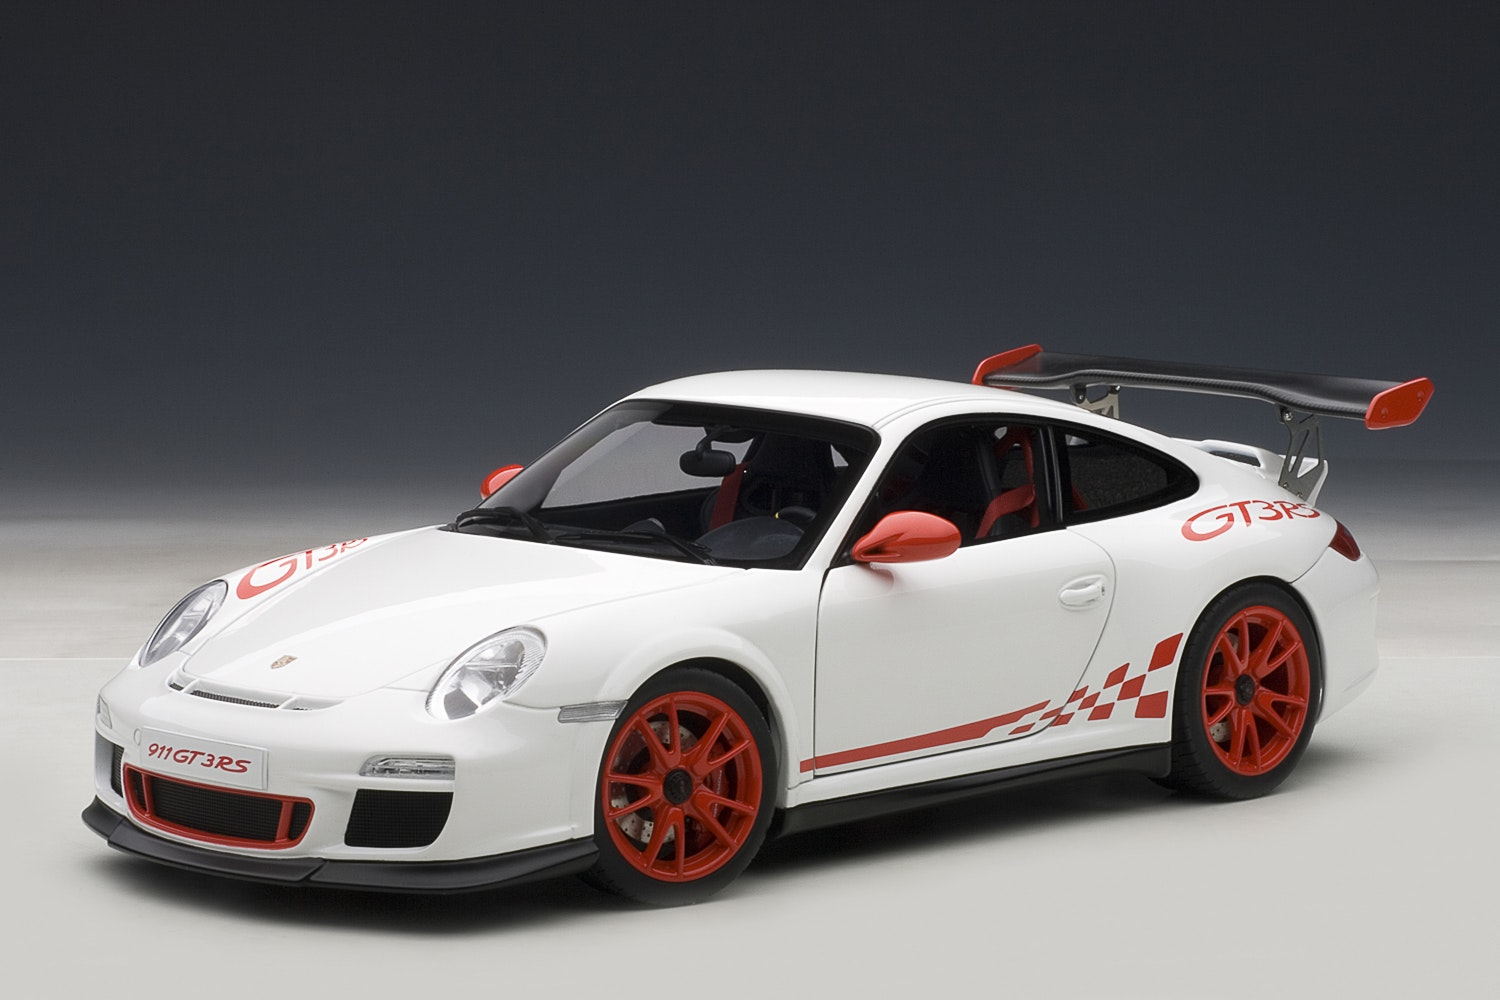 Porsche 911 (997) GT3 RS, White w/ Red Stripes